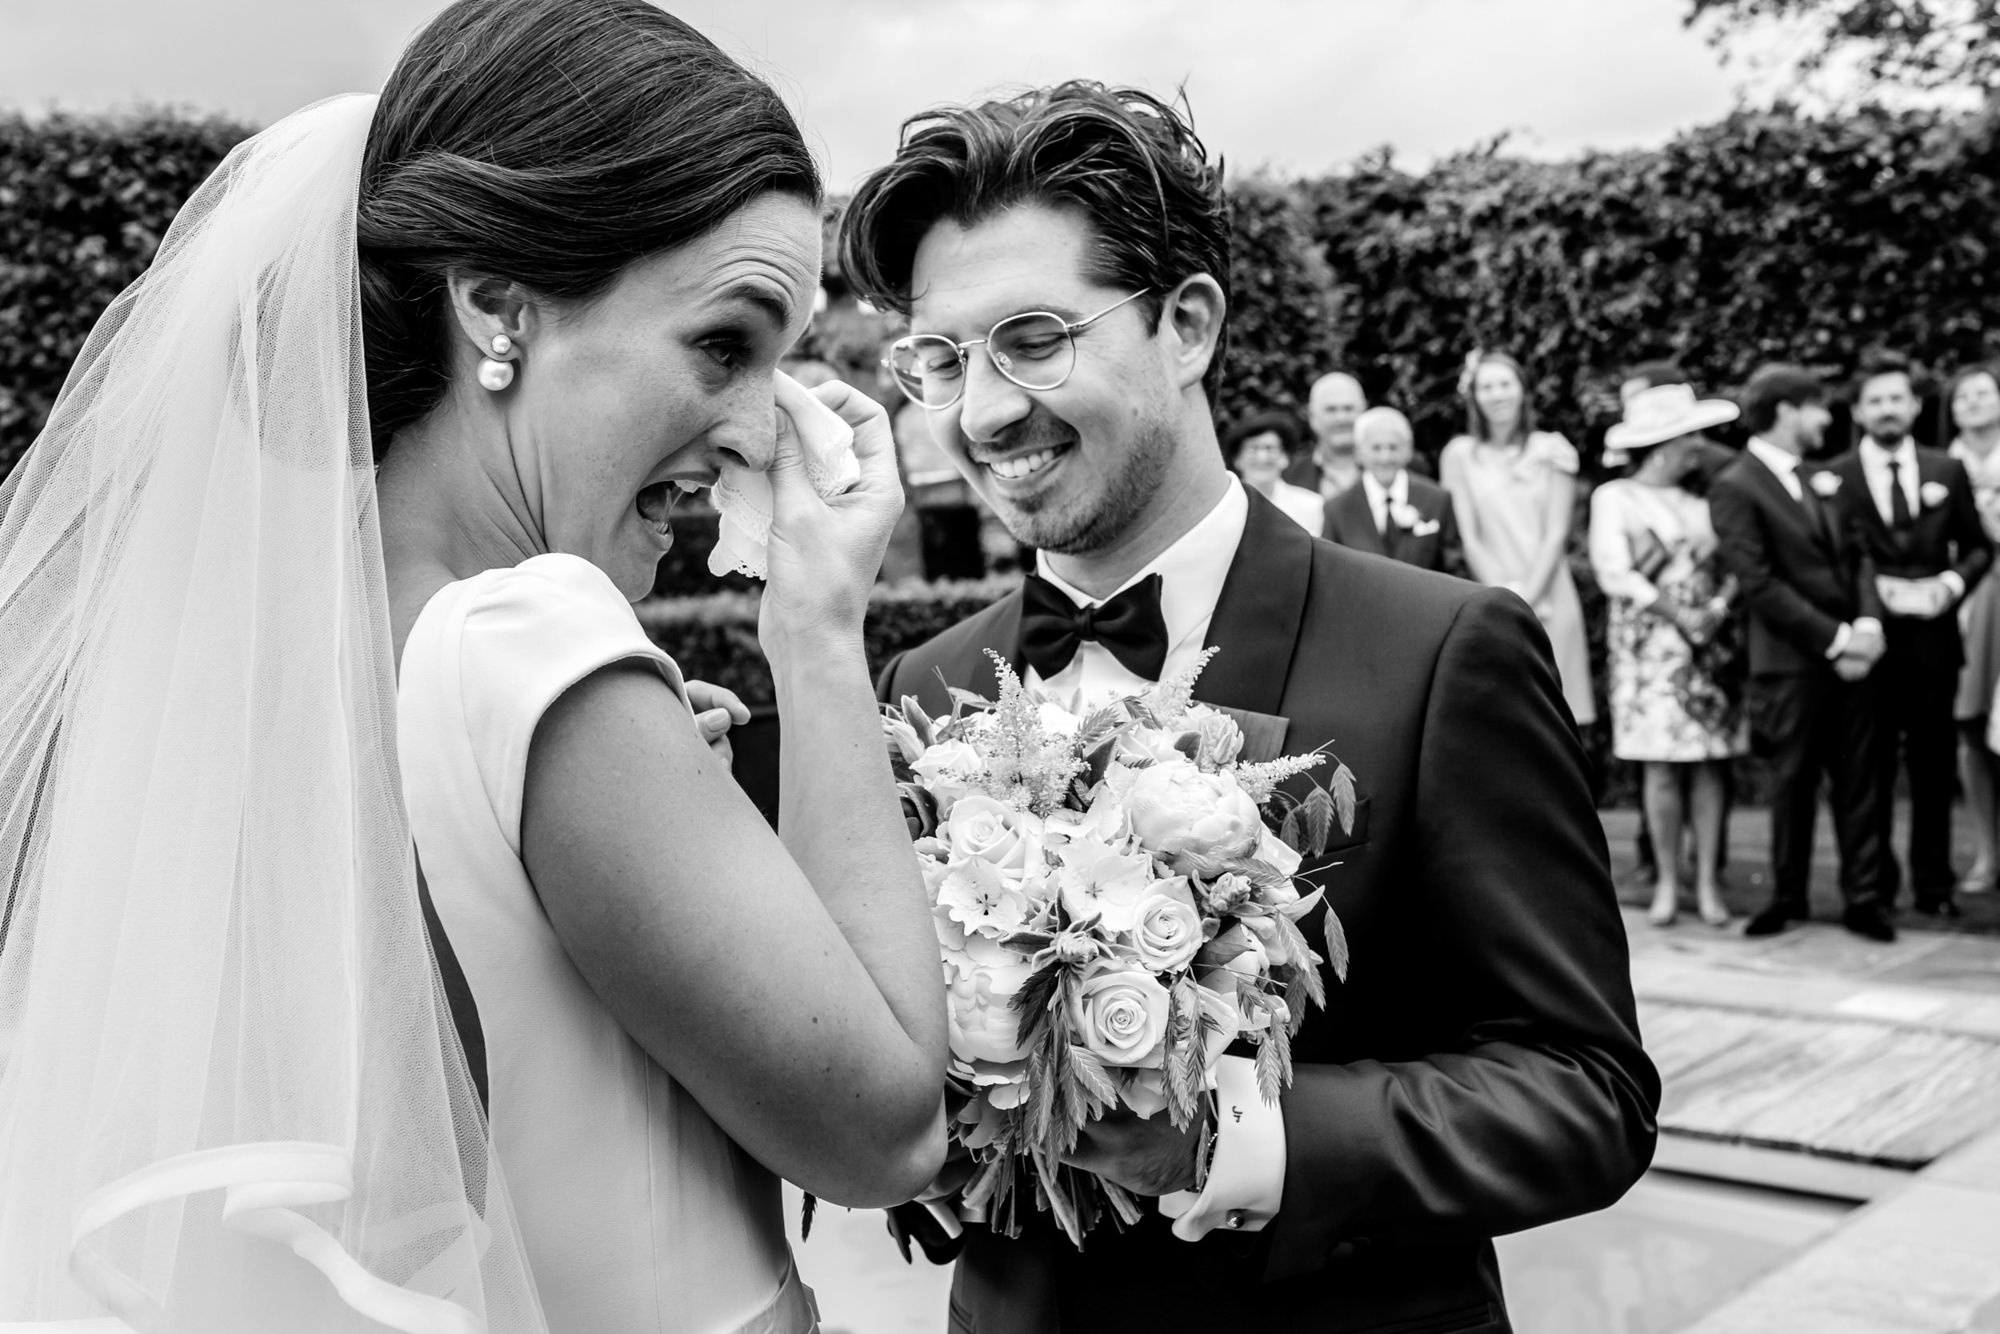 Bride wipes tears away during ceremony - photo by Philippe Swiggers